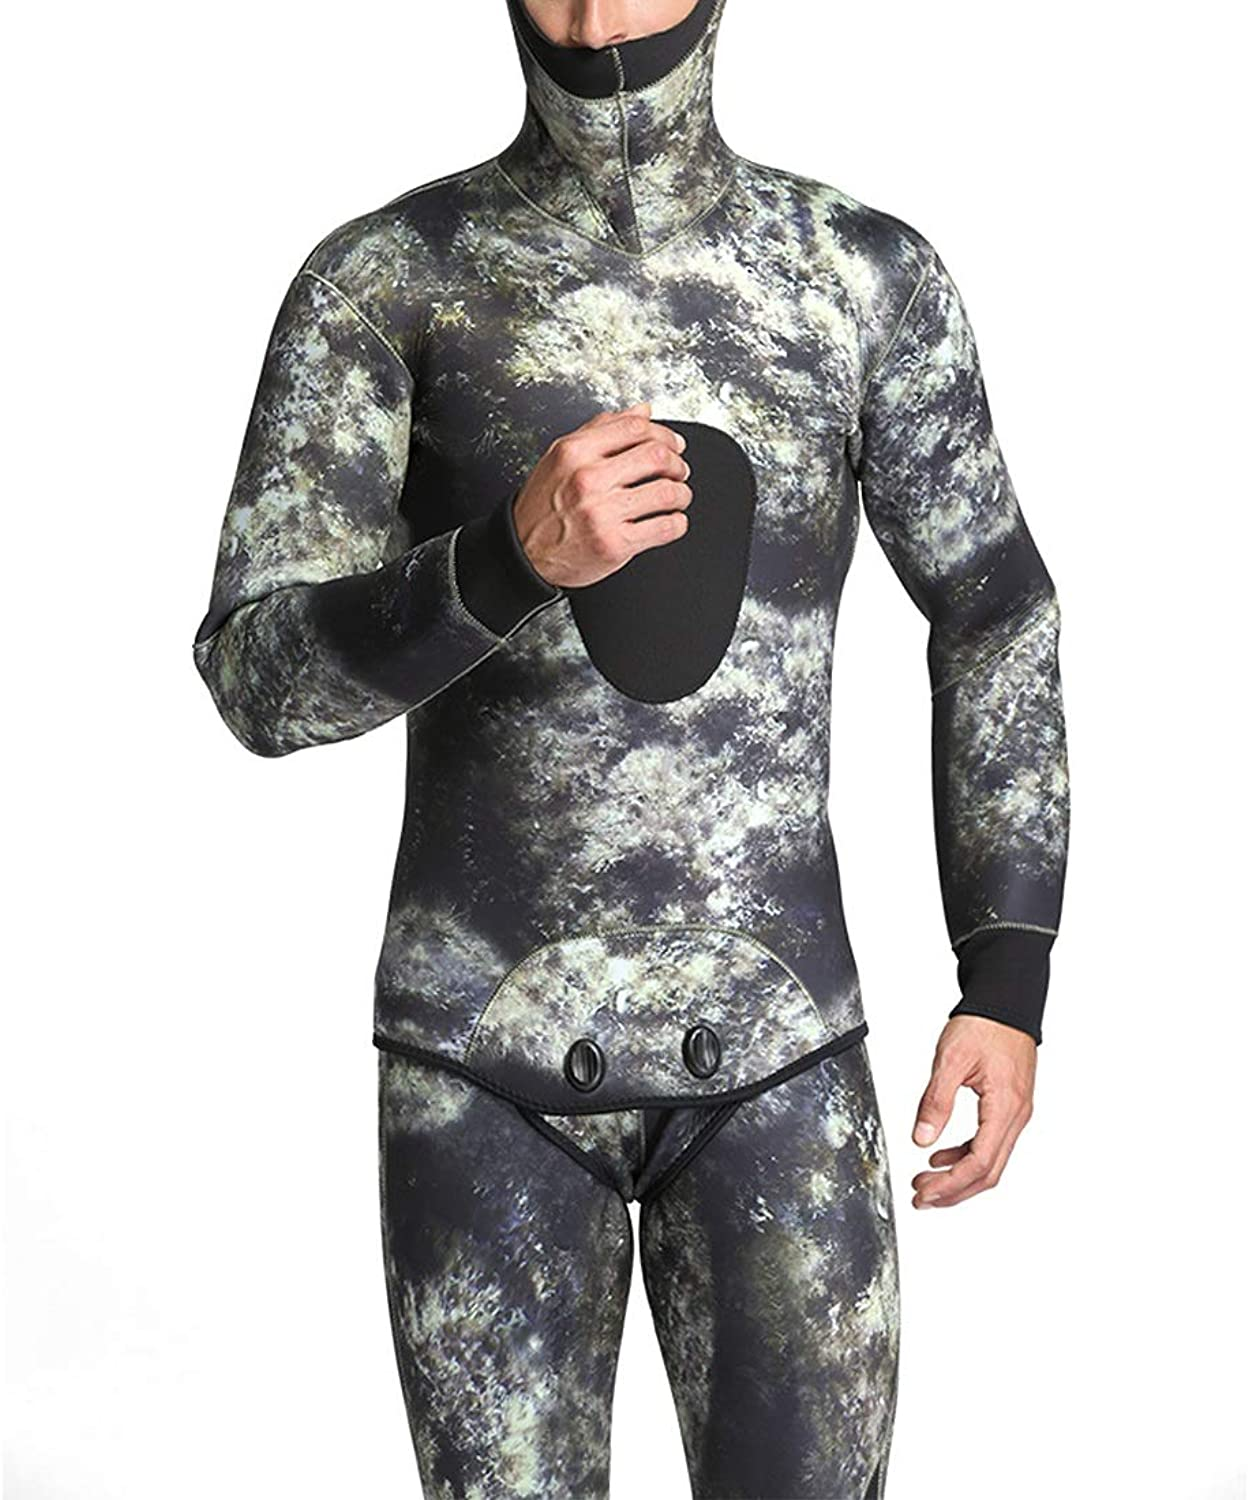 KERVINJESSIE Wetsuit Men's Swimwear Diving Surfing Camouflage Clothes Sunscreen Sweat-Absorbent Quick-Drying Cold Insulation Long-Sleeved (color   2, Size   XL)